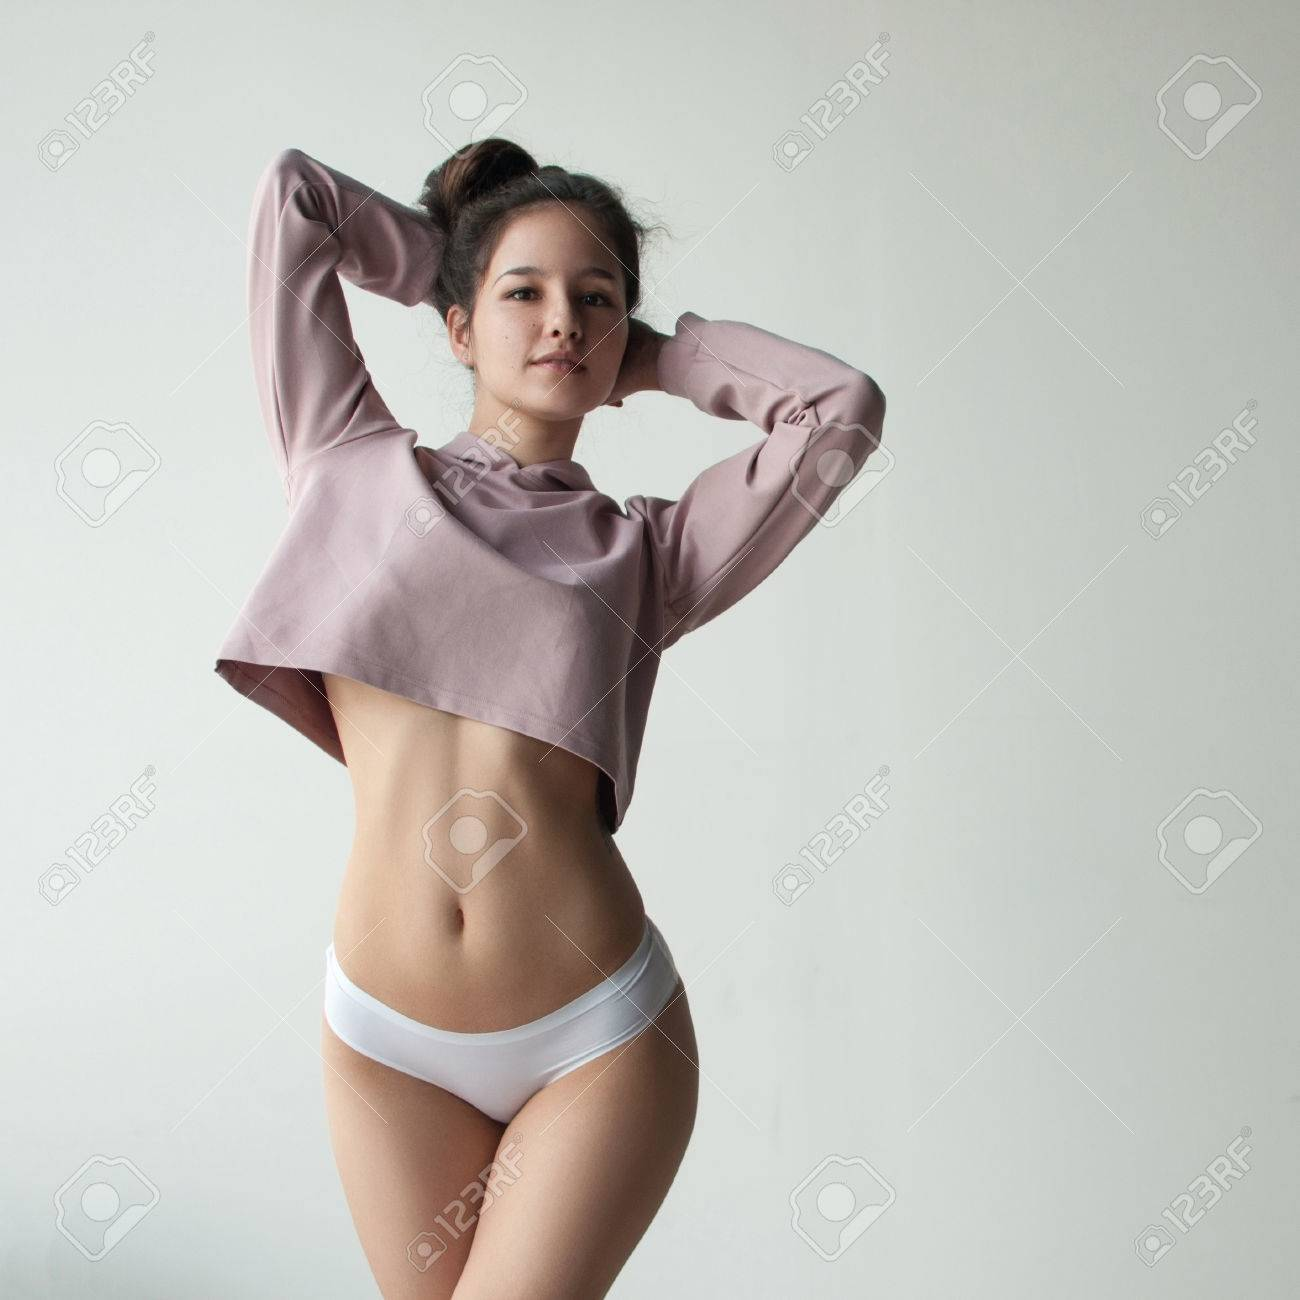 a3a51dba100022 pretty girl with cute face posing in crop top and white pantie in studio  Stock Photo